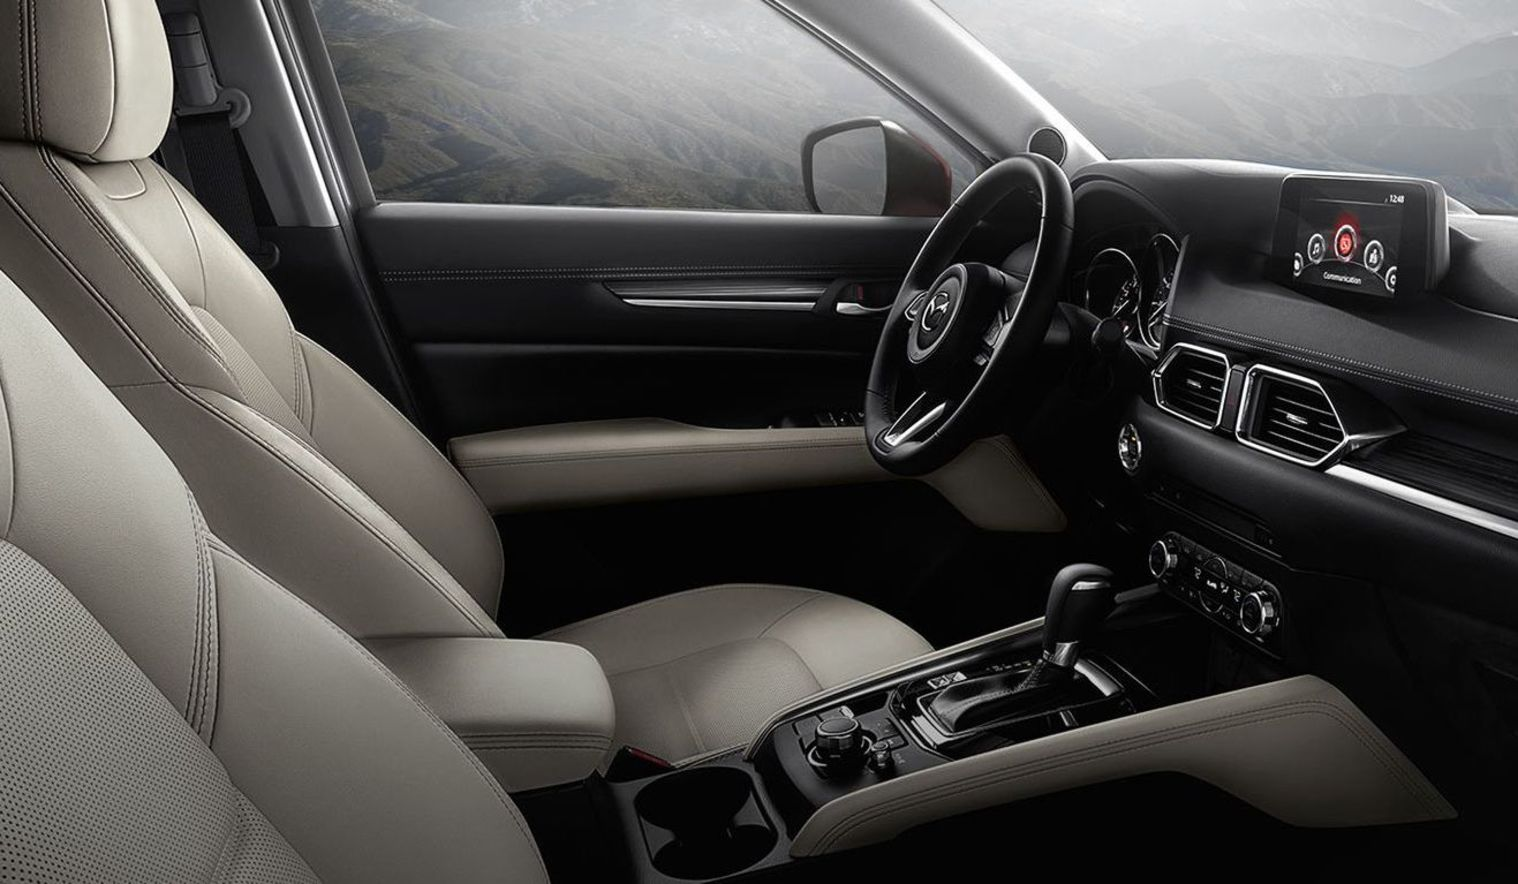 2017 CX-5 Features a Luxurious Cabin